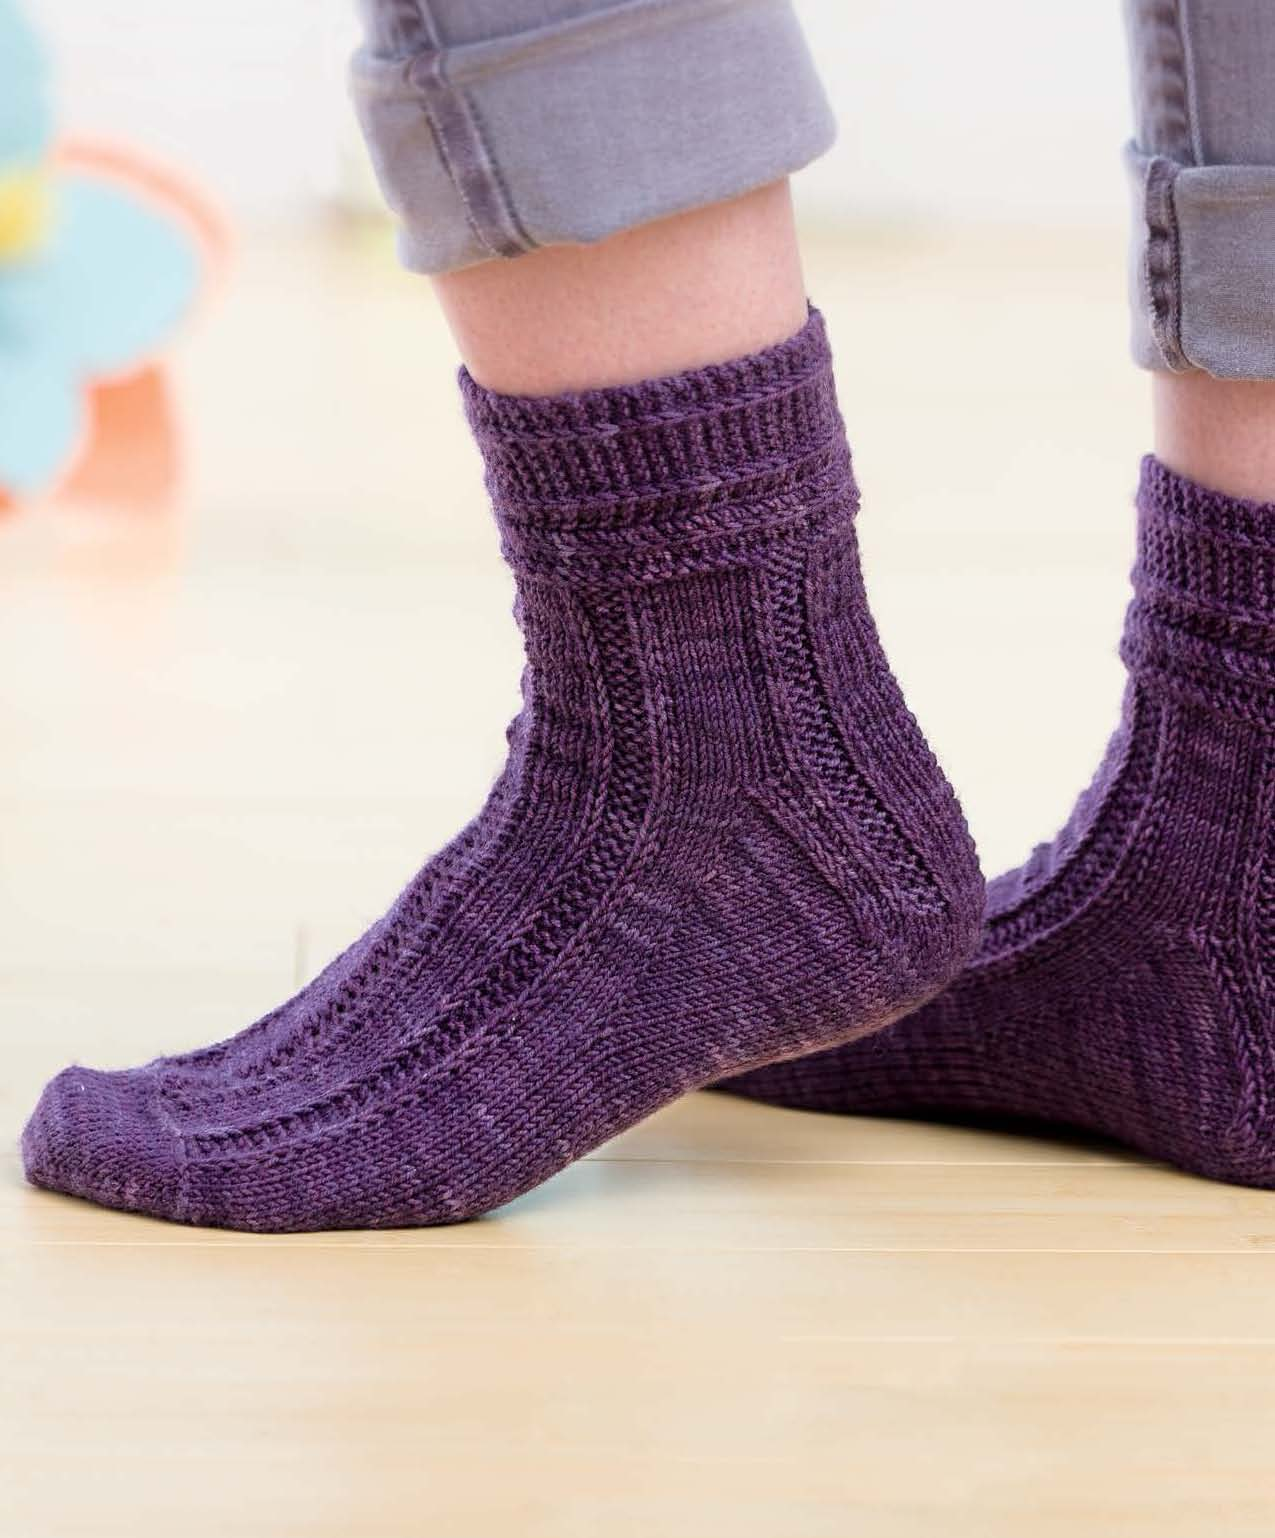 Sockupied - Muscadine Socks beauty shot